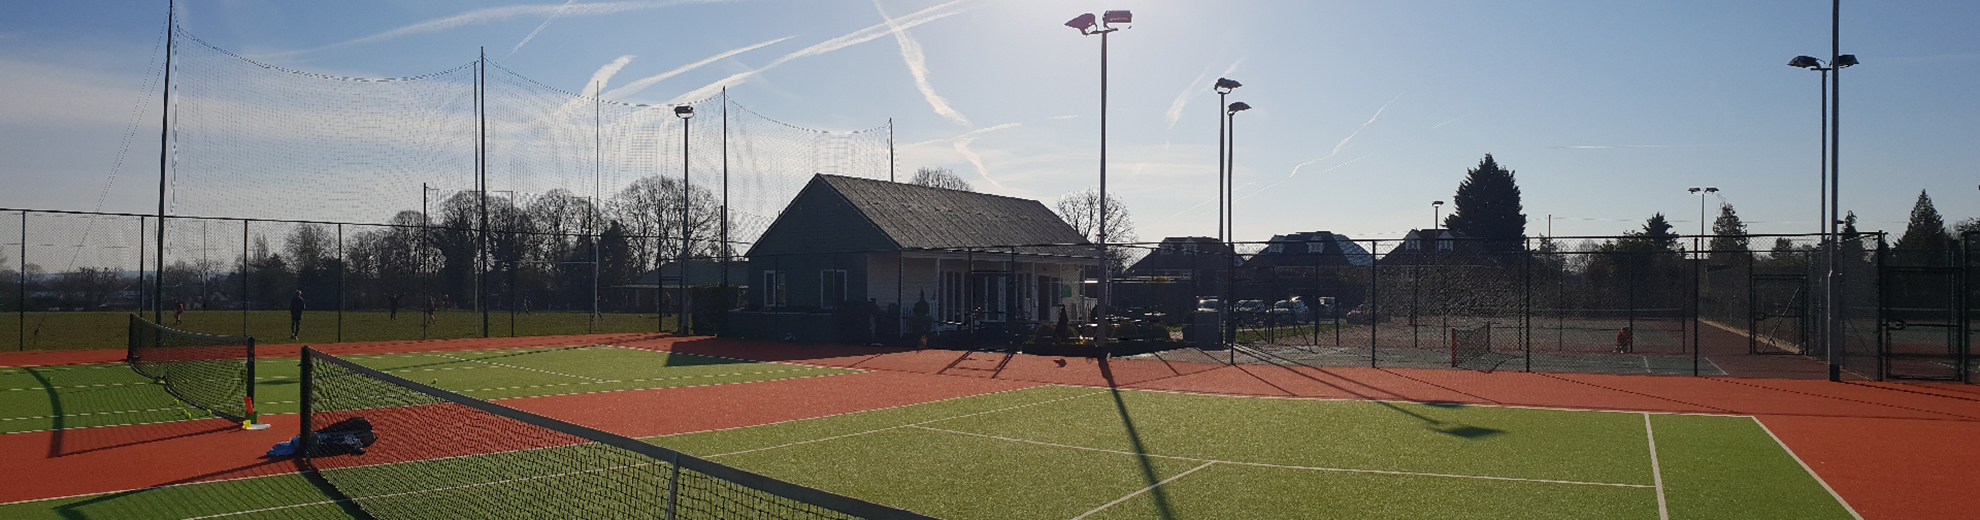 Croxley Tennis Club - Welcome